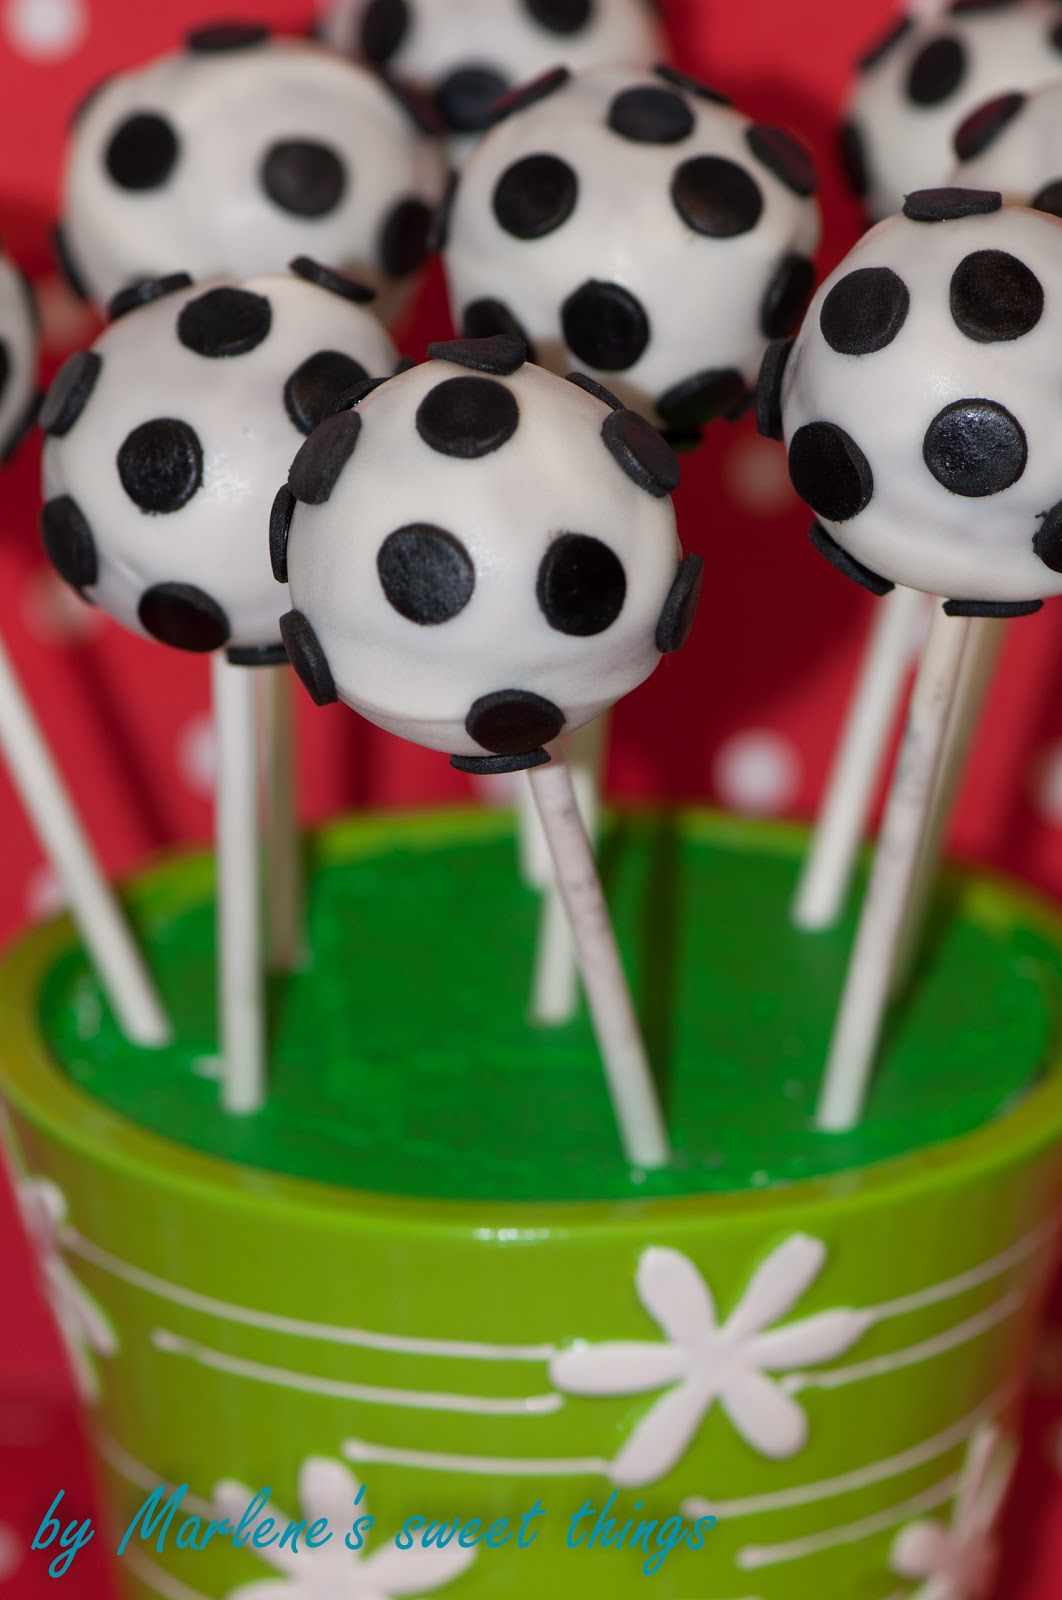 marlene 39 s sweet things fussball cake pops. Black Bedroom Furniture Sets. Home Design Ideas